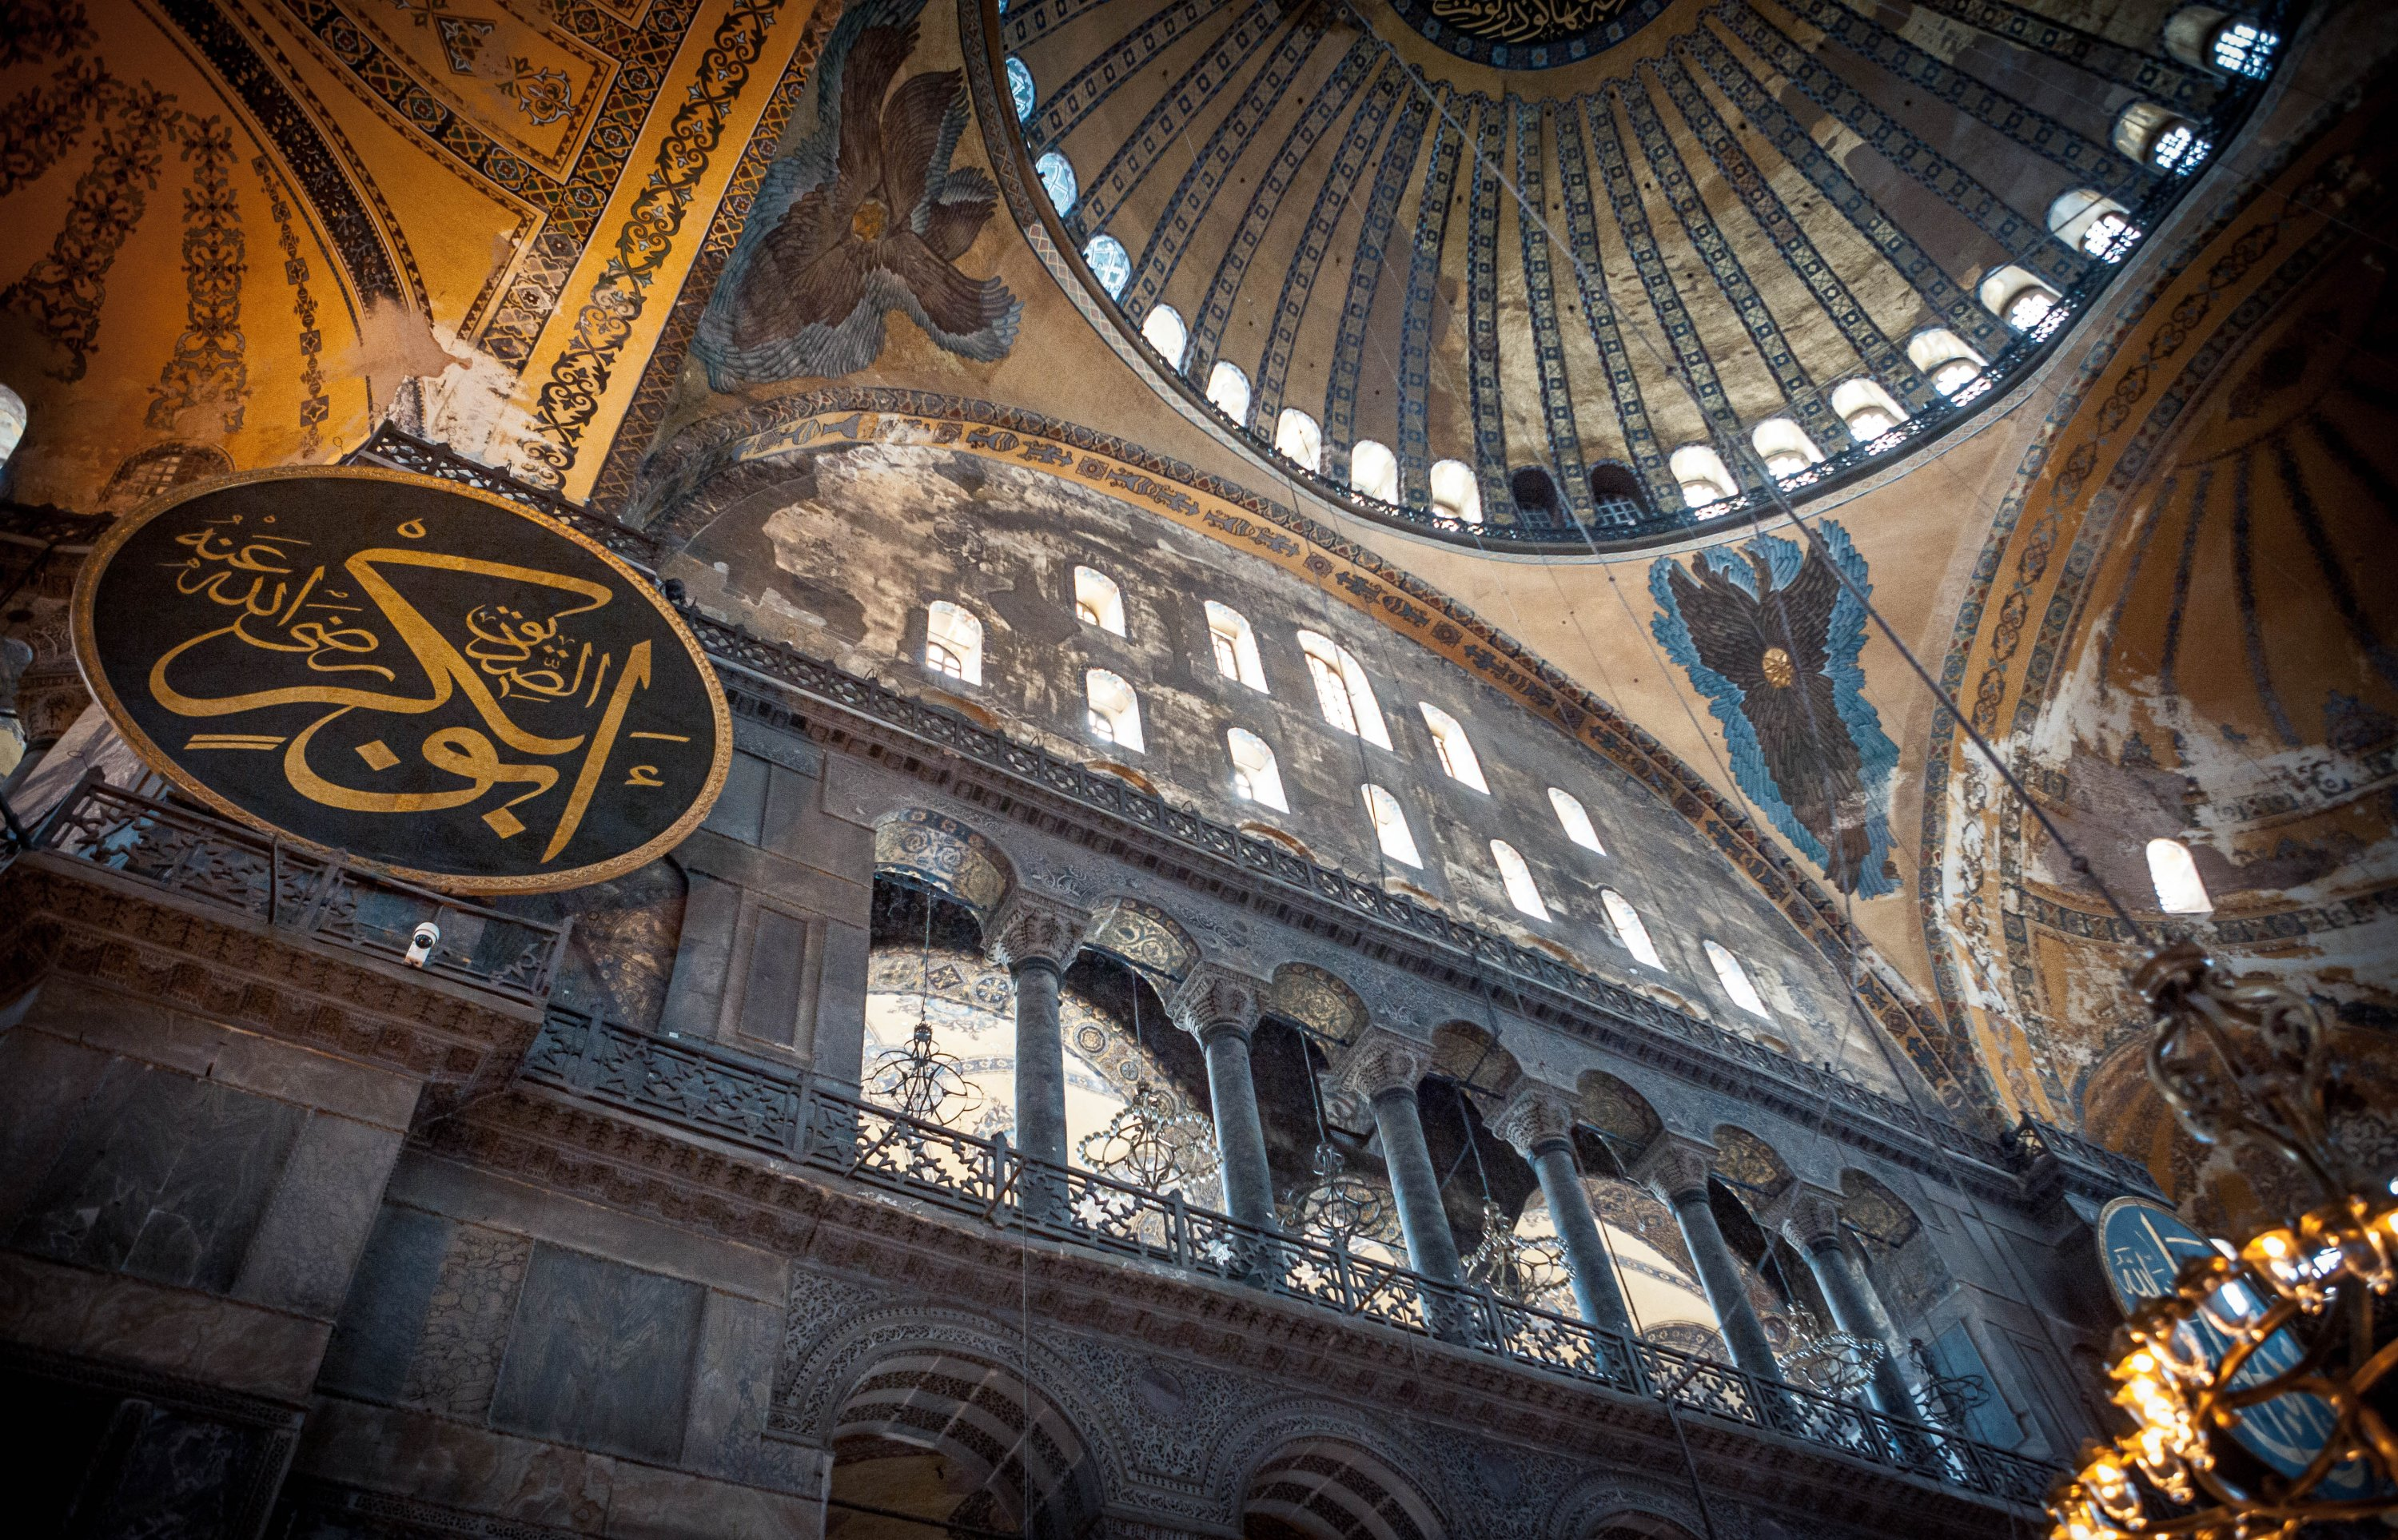 The interior of Hagia Sophia, which was put under protection with a foundation established by Sultan Mehmed II. (Photo by Hatice Çınar)